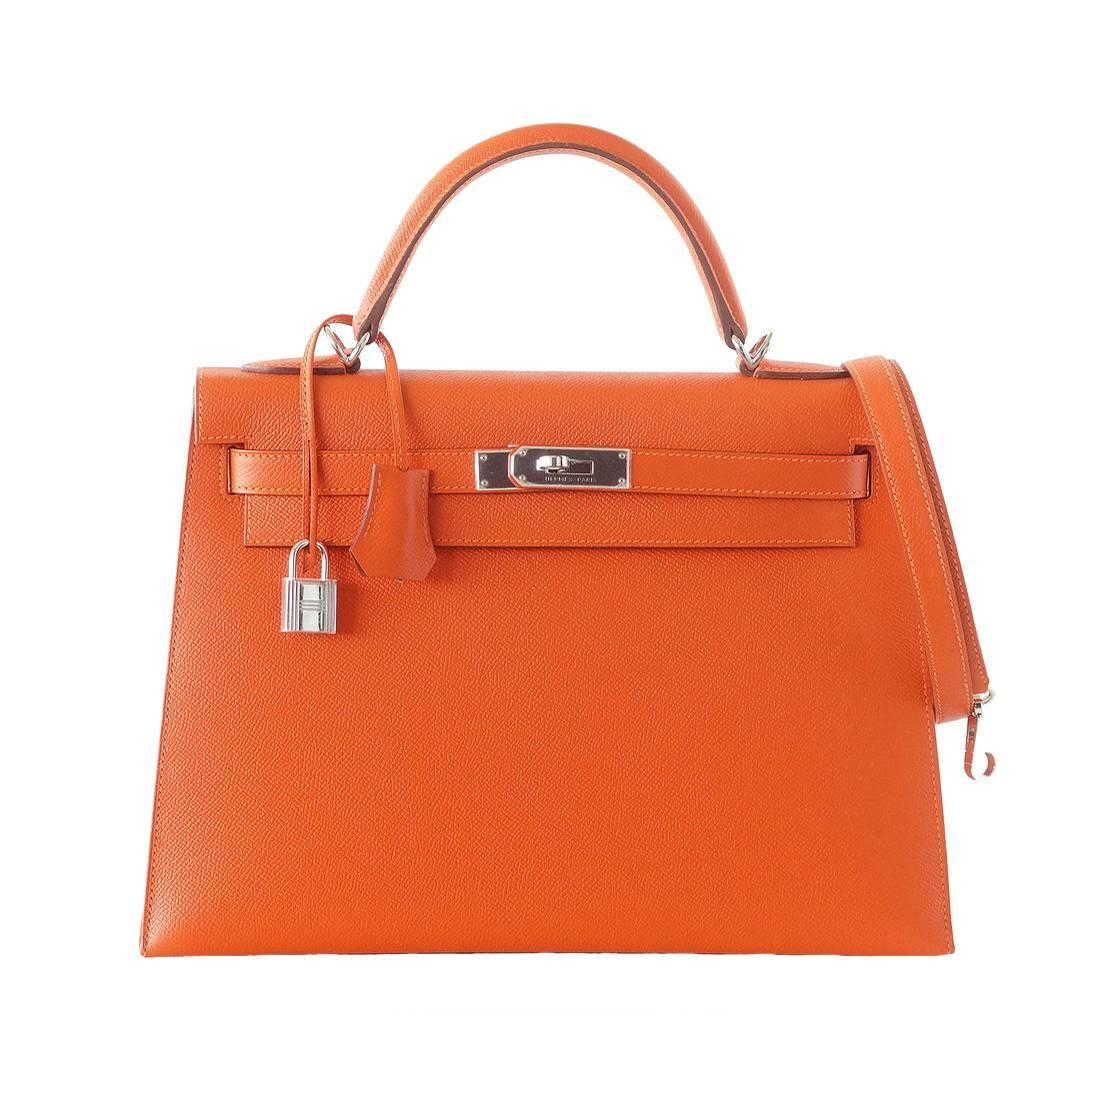 hermes rouge h contour epsom sellier kelly 25cm gold hardware